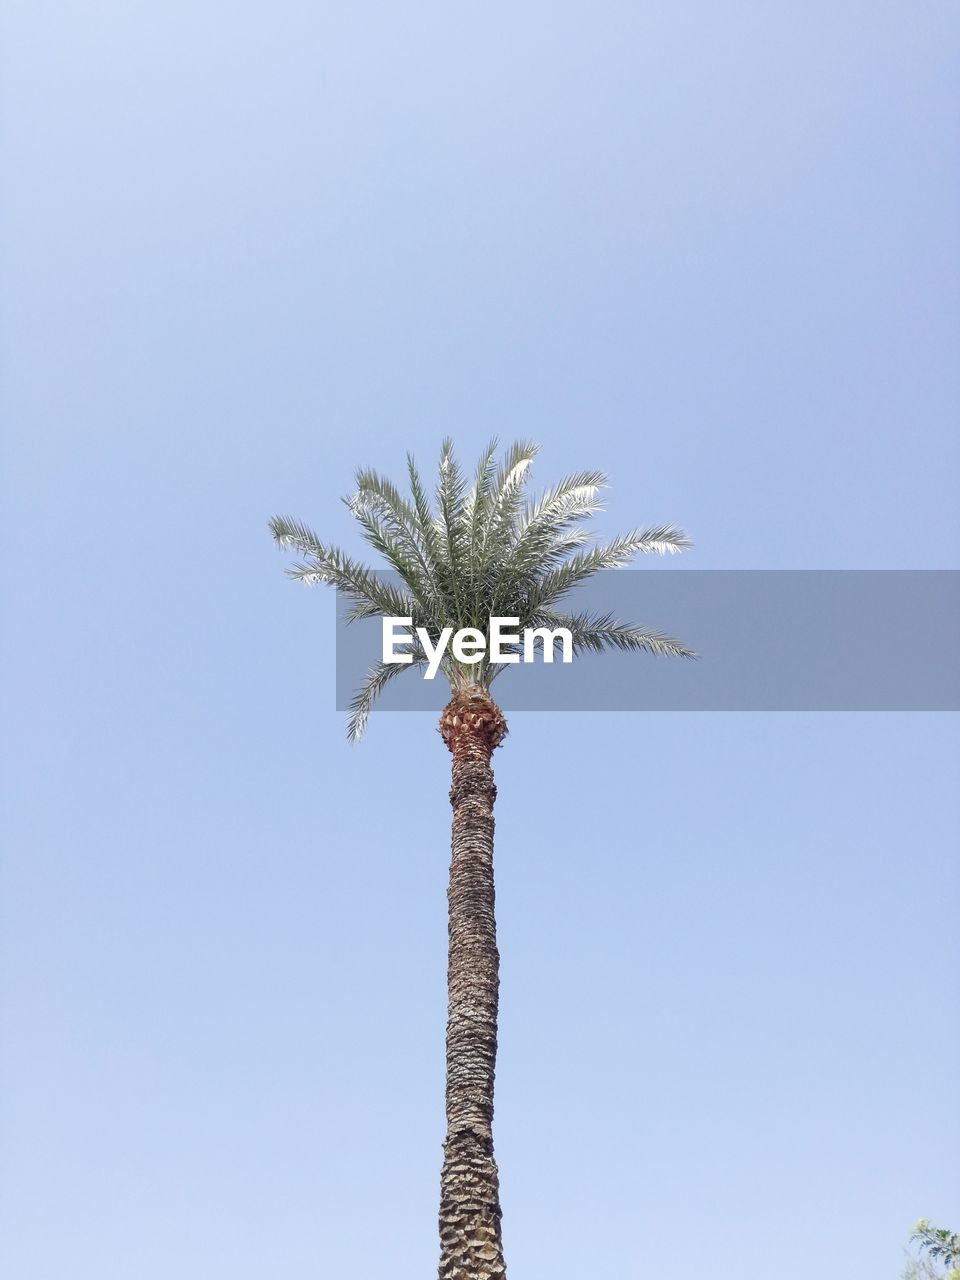 palm tree, clear sky, low angle view, growth, nature, day, tree, no people, outdoors, beauty in nature, sky